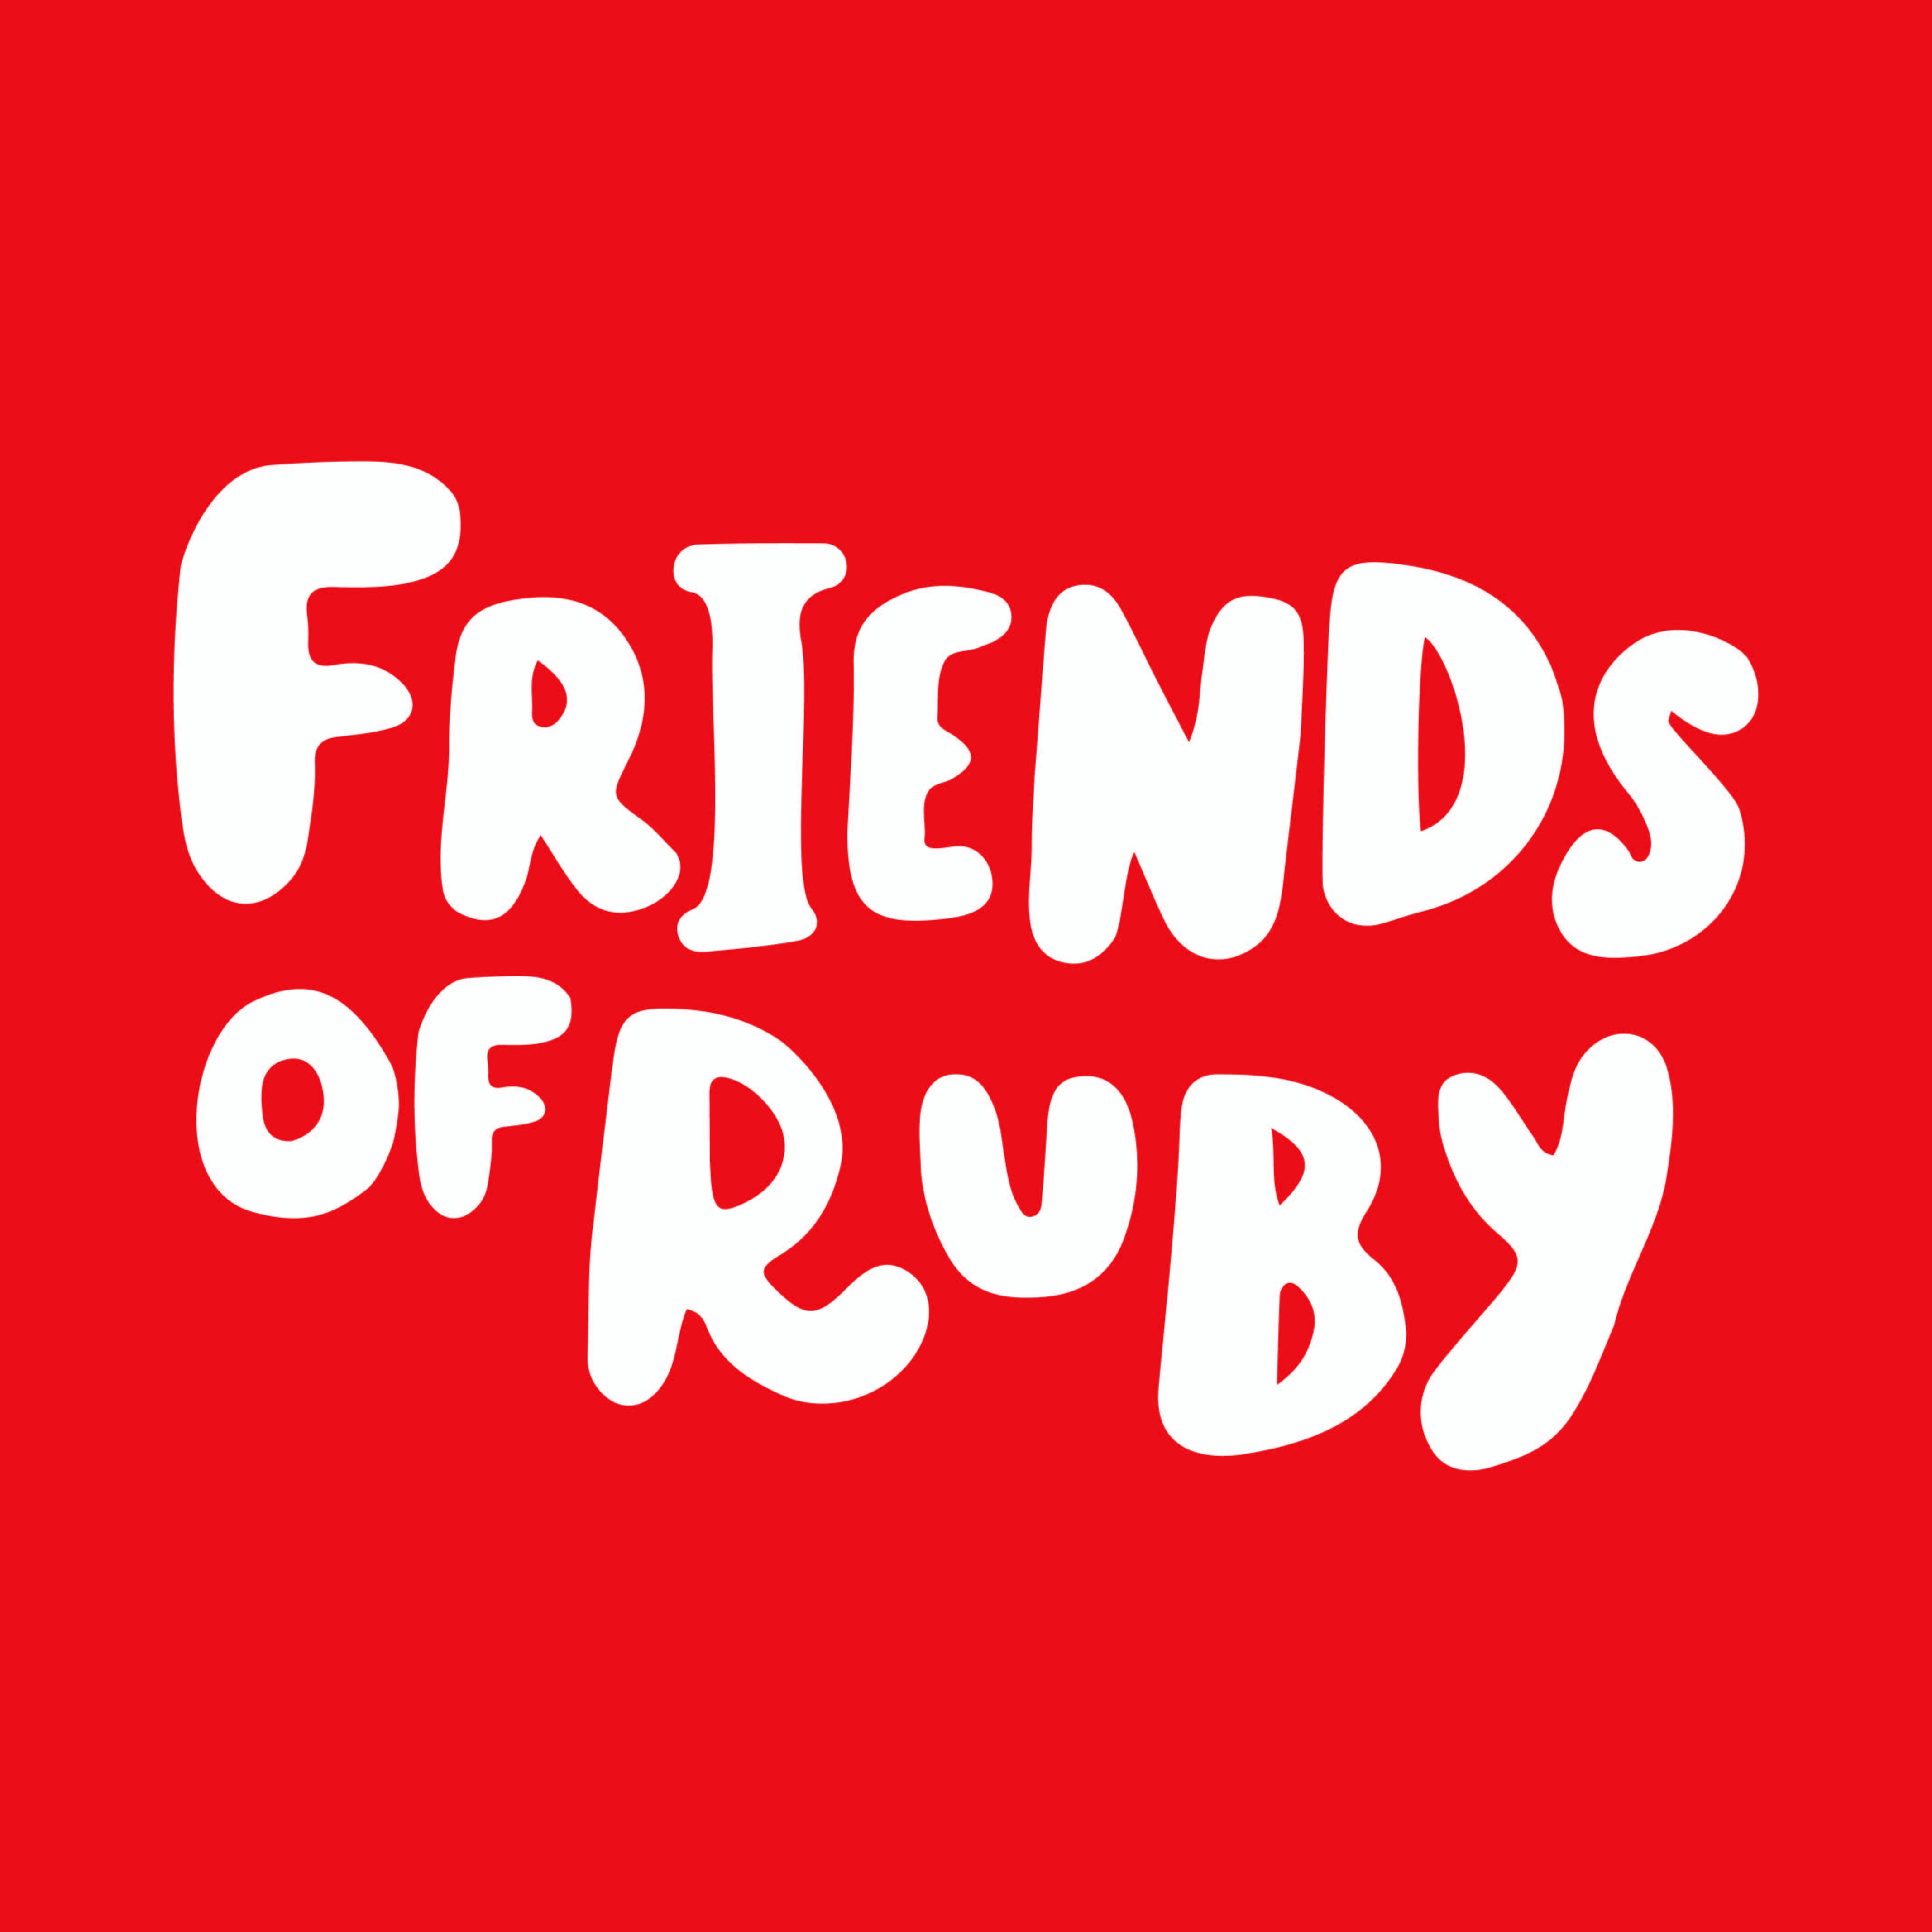 In addition to the rebrand, I developed a welcome package, given to youth who become a member of the Friends of Ruby community. Within the welcome package, youth will receive a branded Friends of Ruby tote bag, an informative booklet, Ruby pins, and stickers.